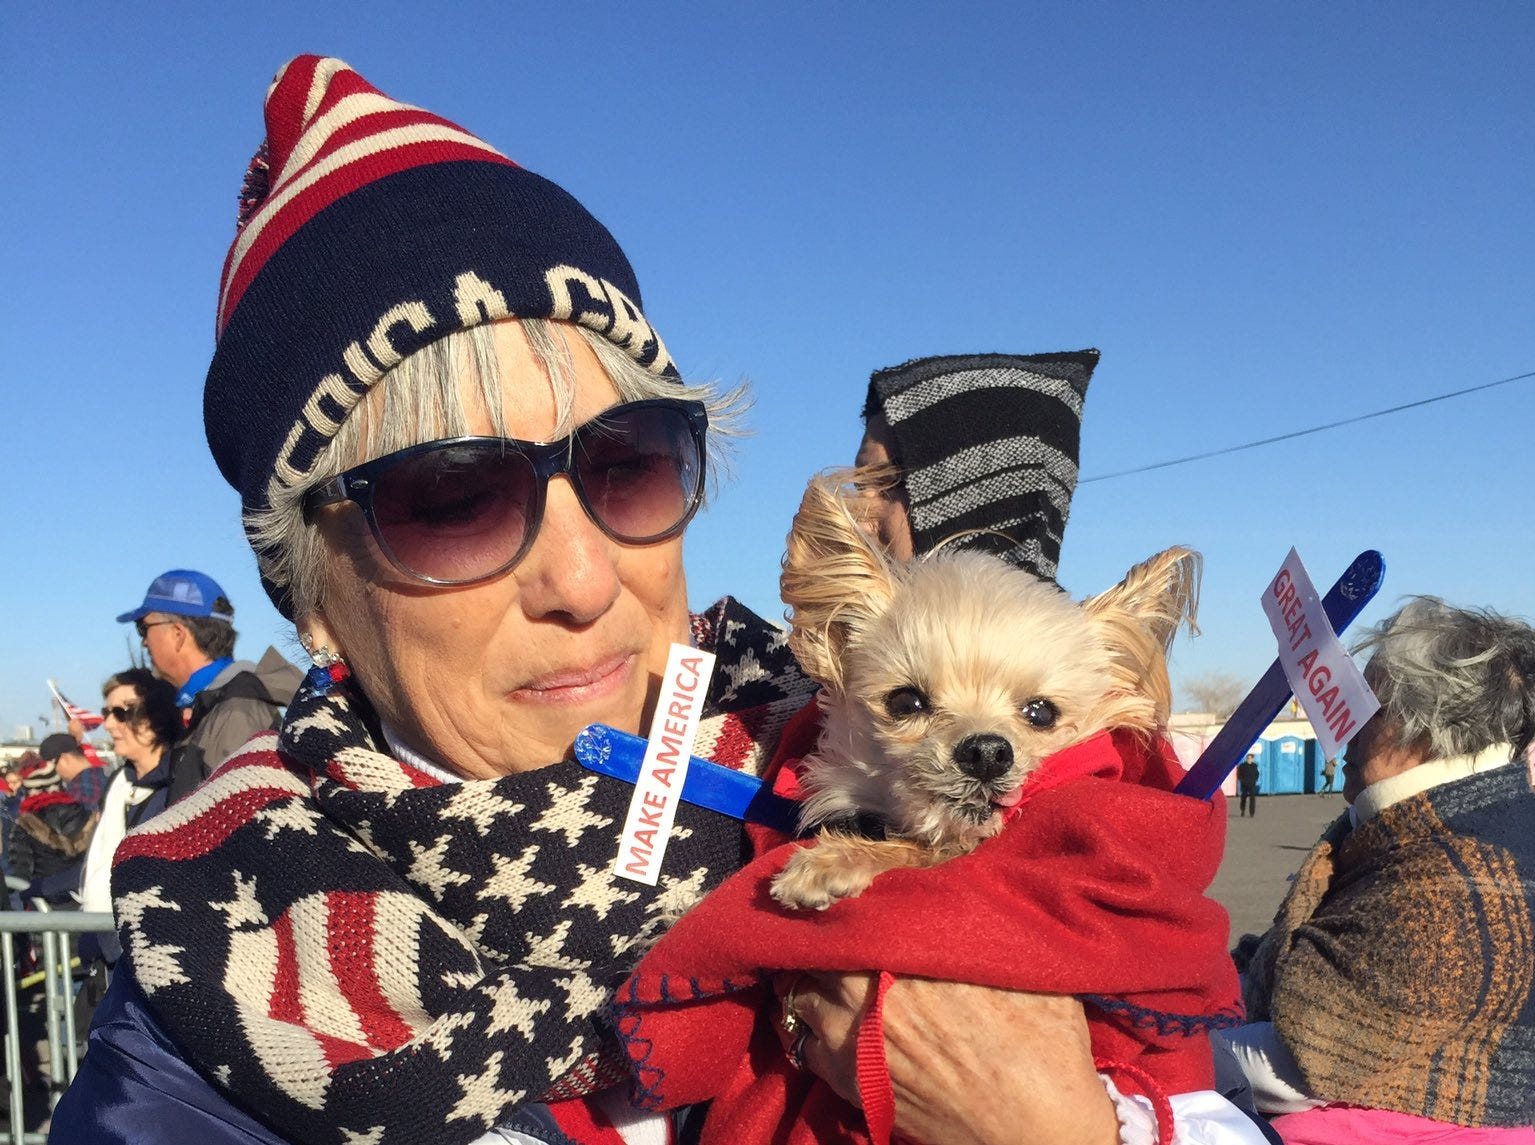 Maria Telles of Las Cruces shows her support for President Donald Trump at before Trump rally in El Paso with her dog, Penny.